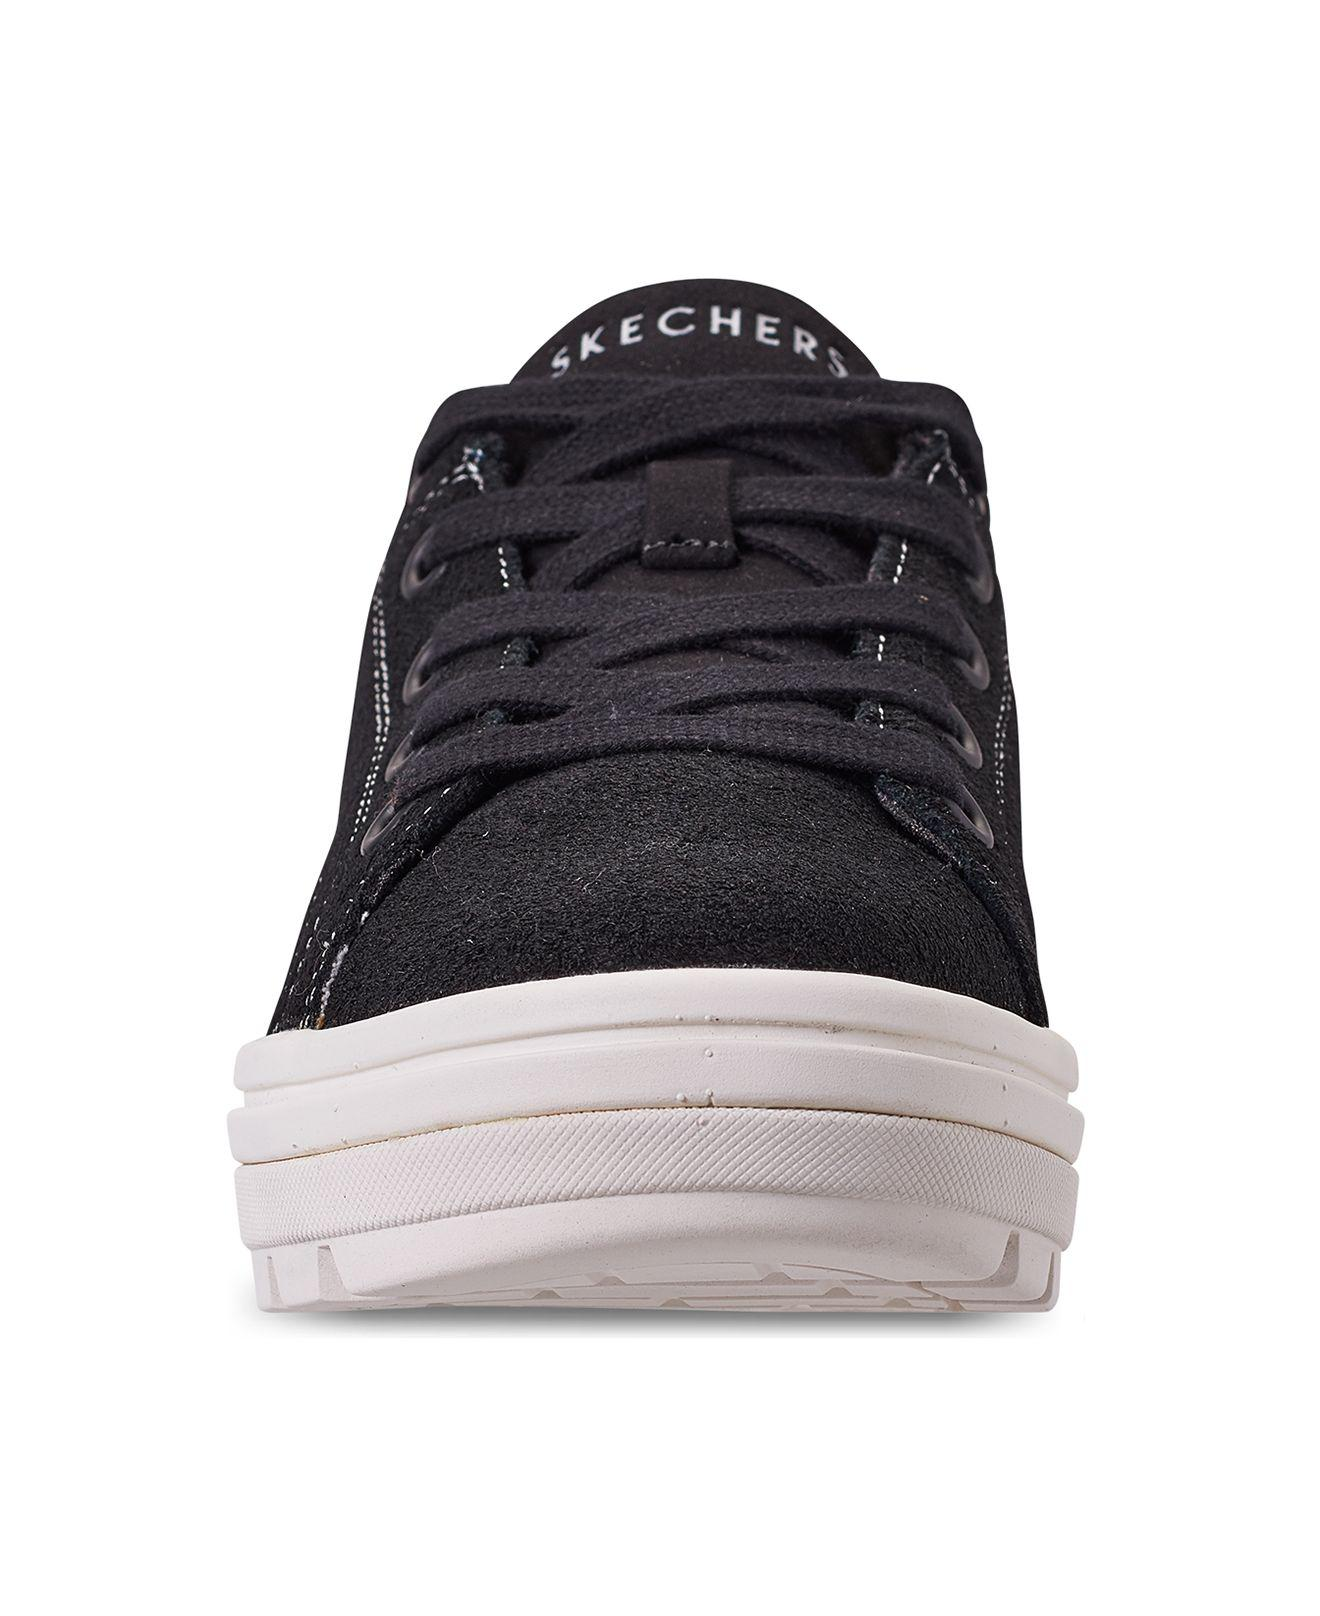 0b233490800 Skechers - Black Street Cleat - Back Again Casual Sneakers From Finish Line  - Lyst. View fullscreen